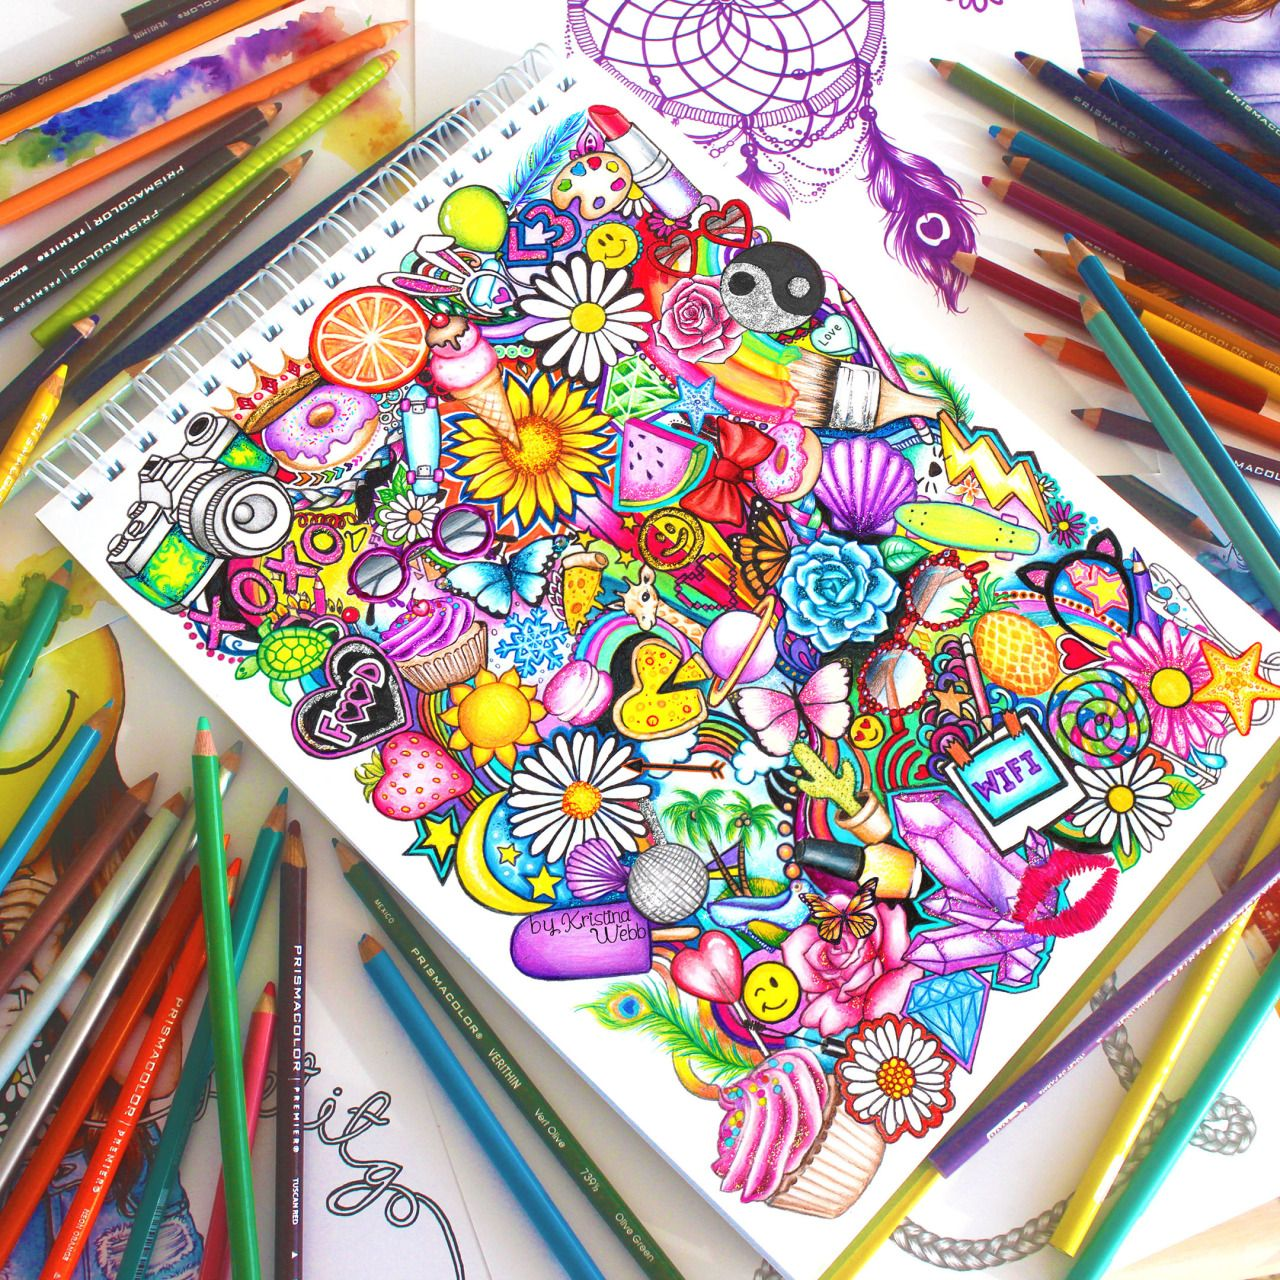 Colour Me Creative Full Doodle Drawing